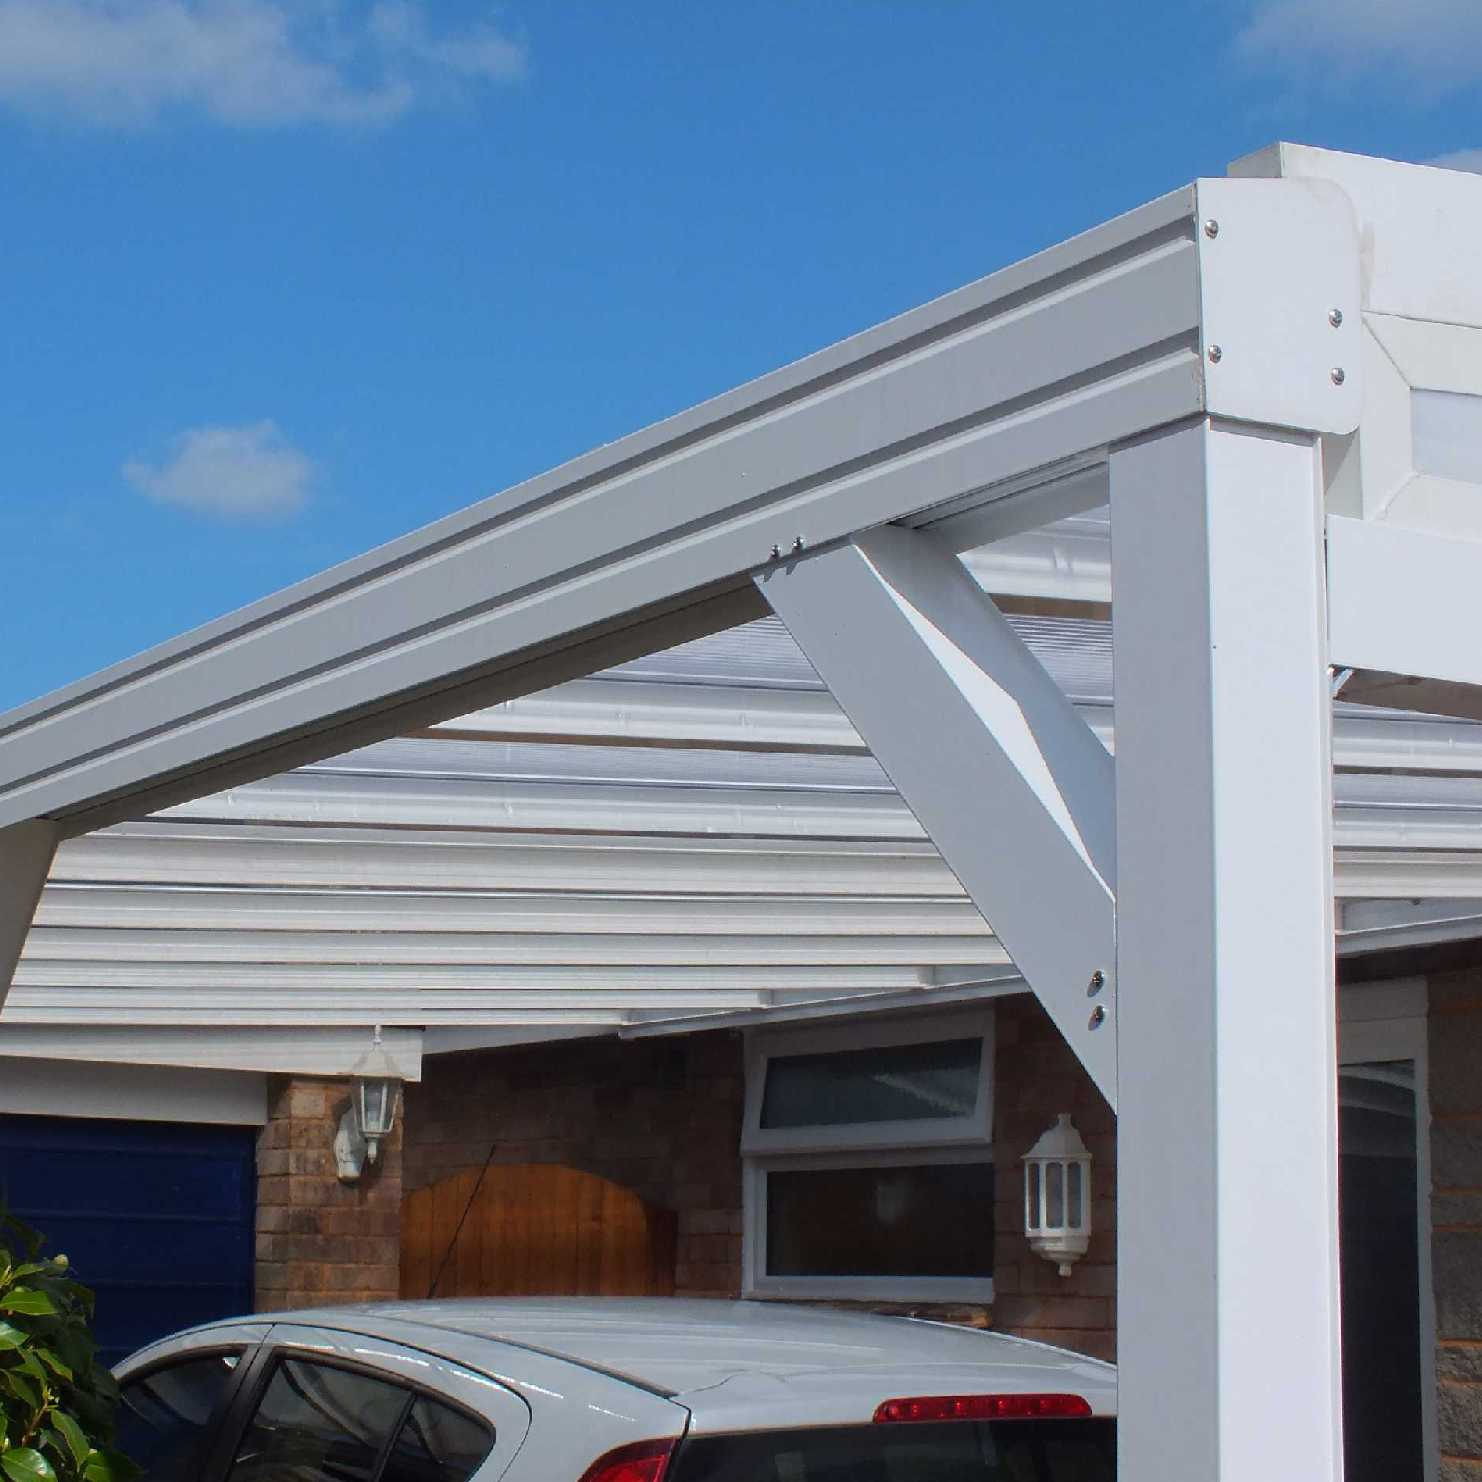 Buy Omega Smart White Lean-To Canopy with 16mm Polycarbonate Glazing - 2.1m (W) x 4.0m (P), (2) Supporting Posts online today